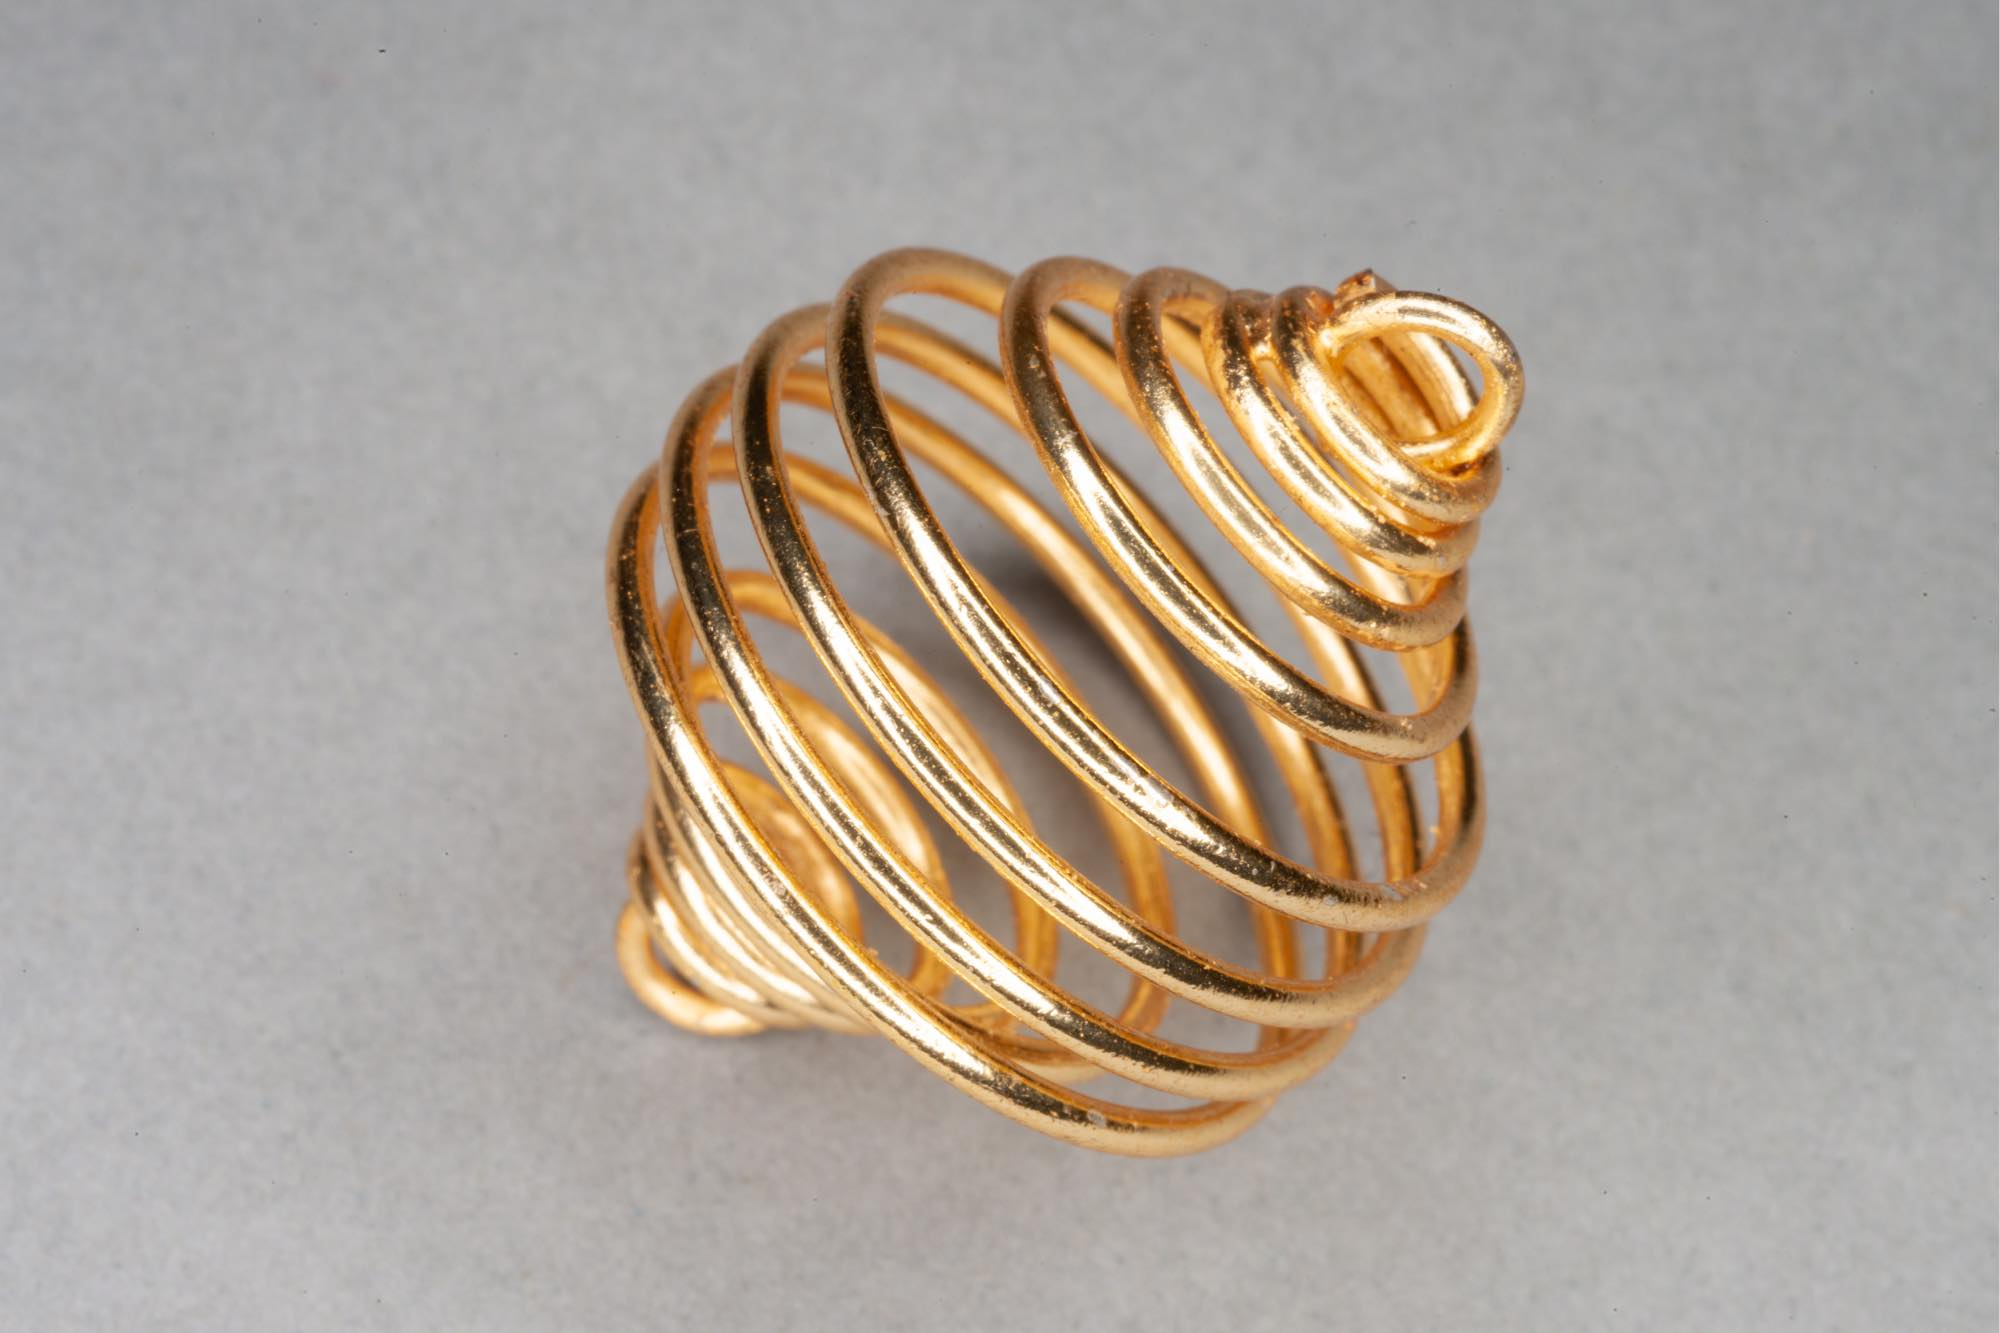 Gold Plated Spiral Metal Cage Bead, 2 End Loops 35x25mm